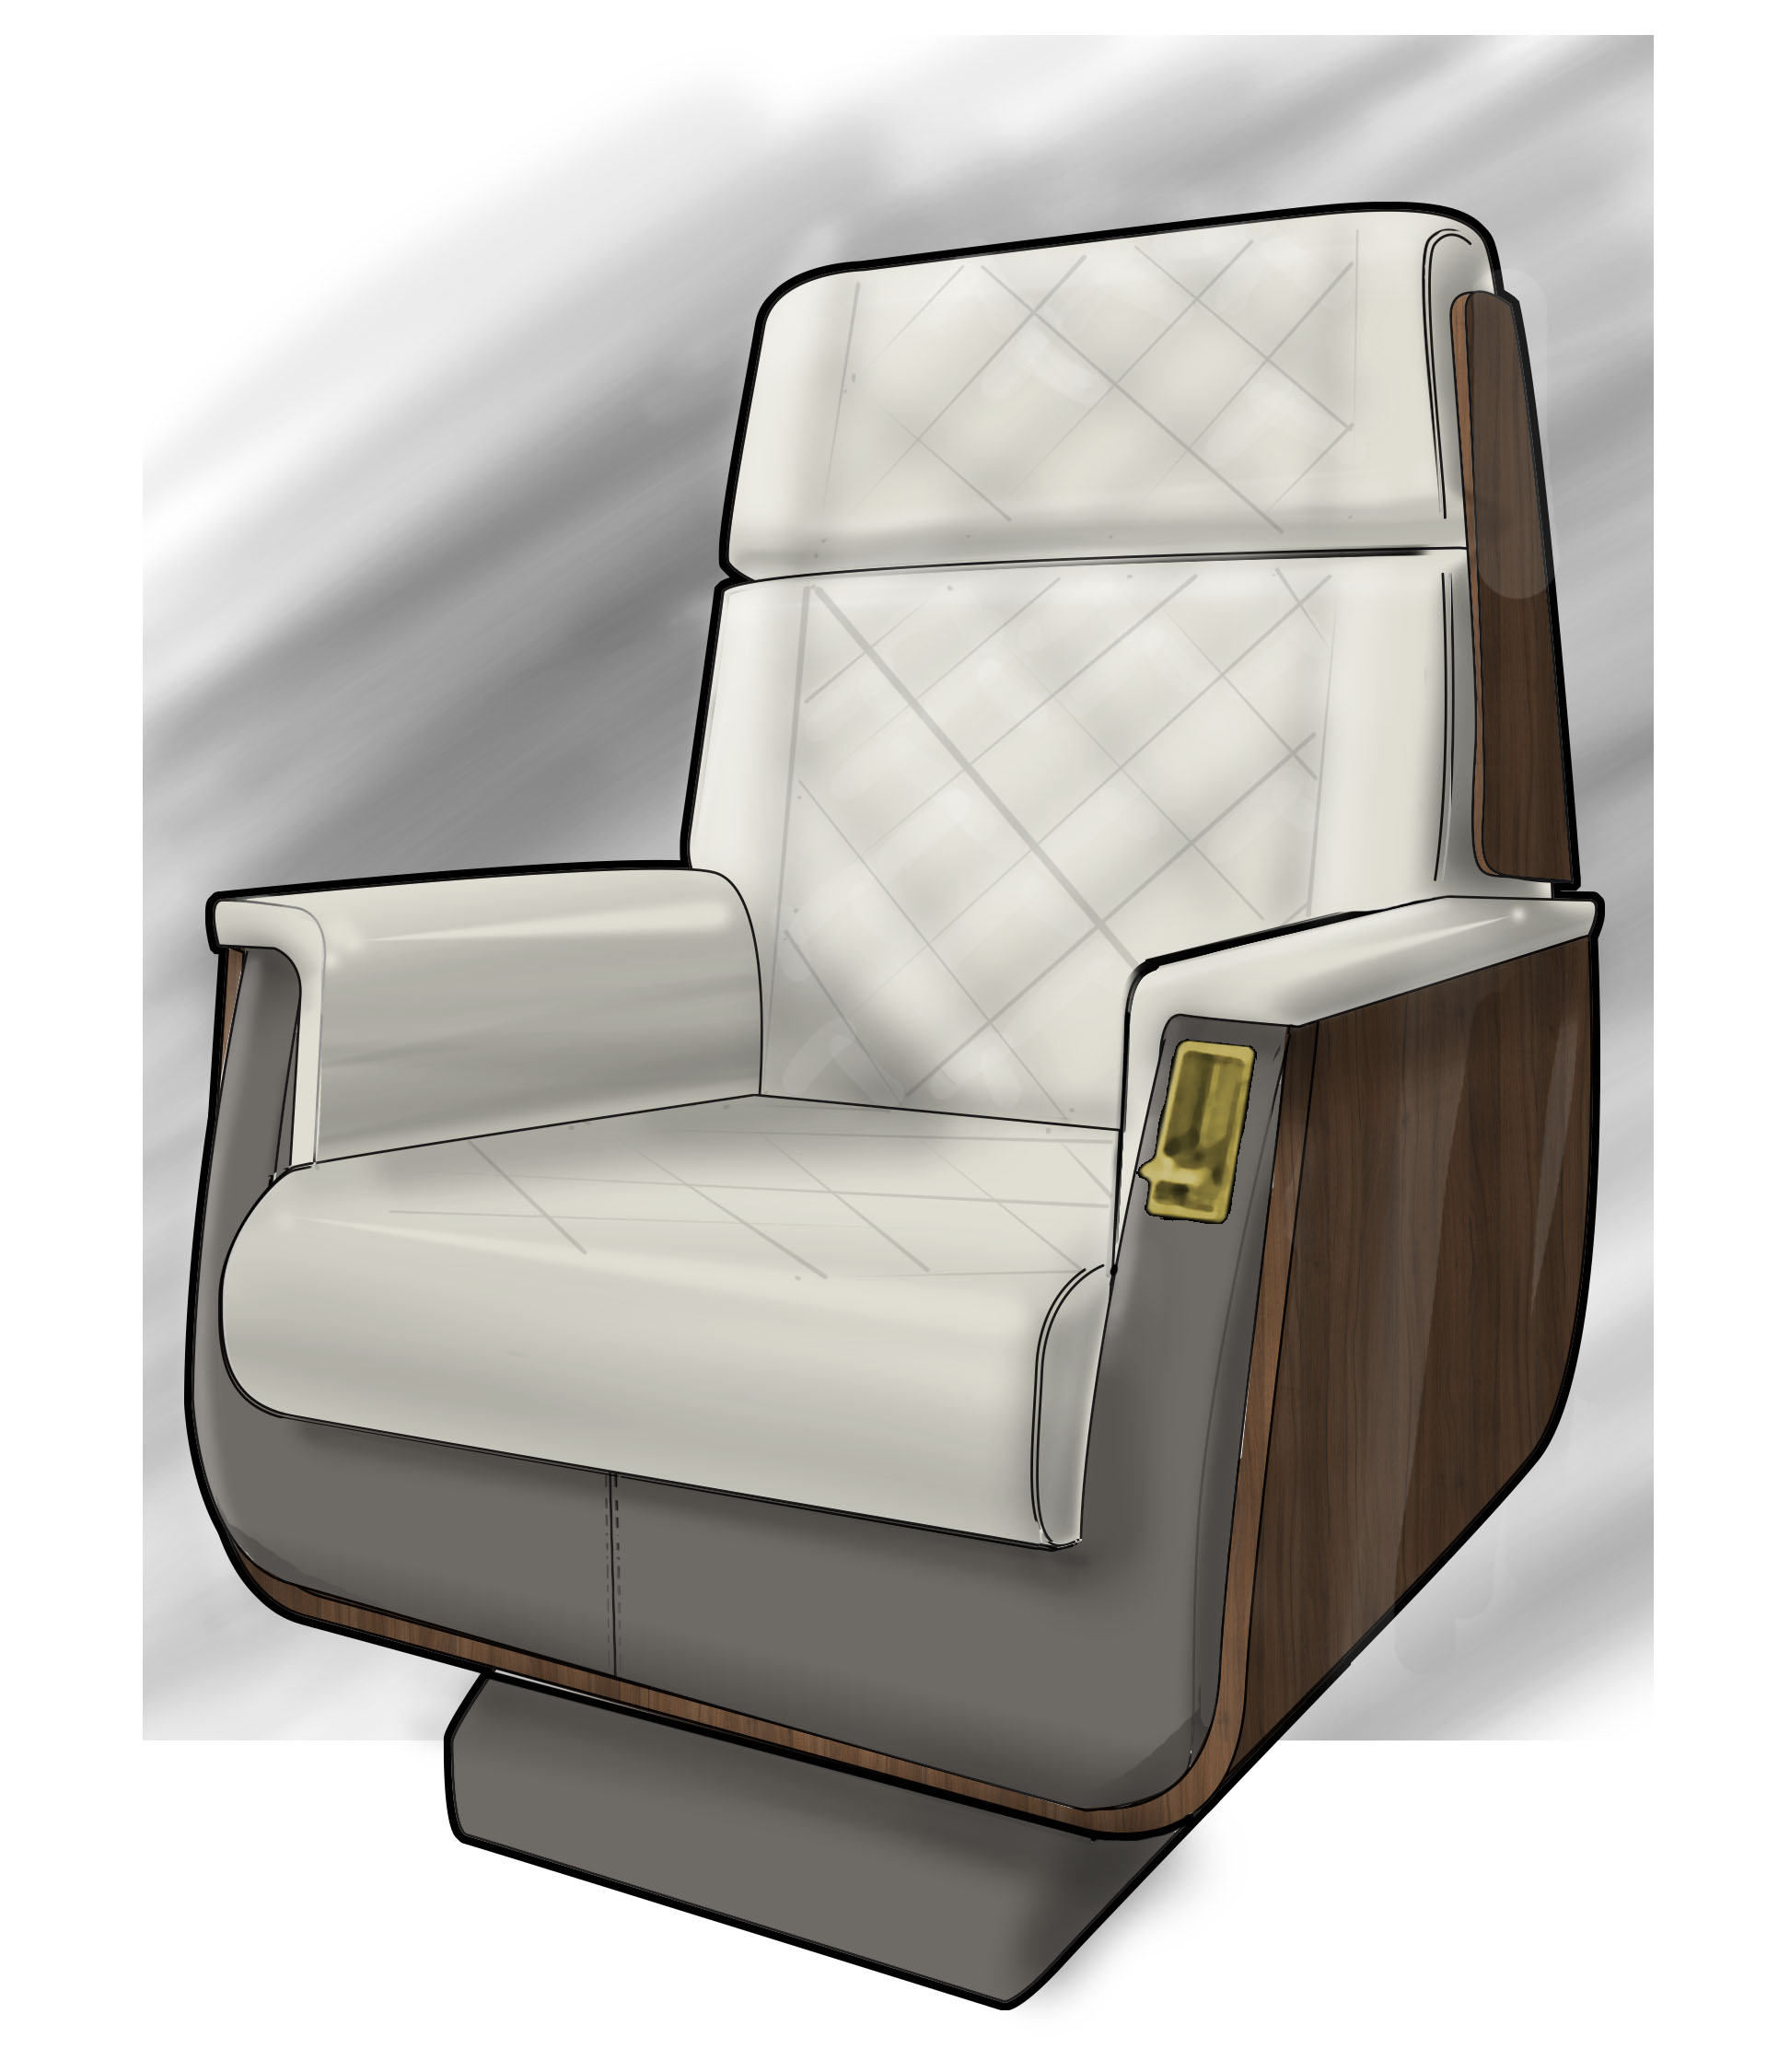 Upholstery Concept